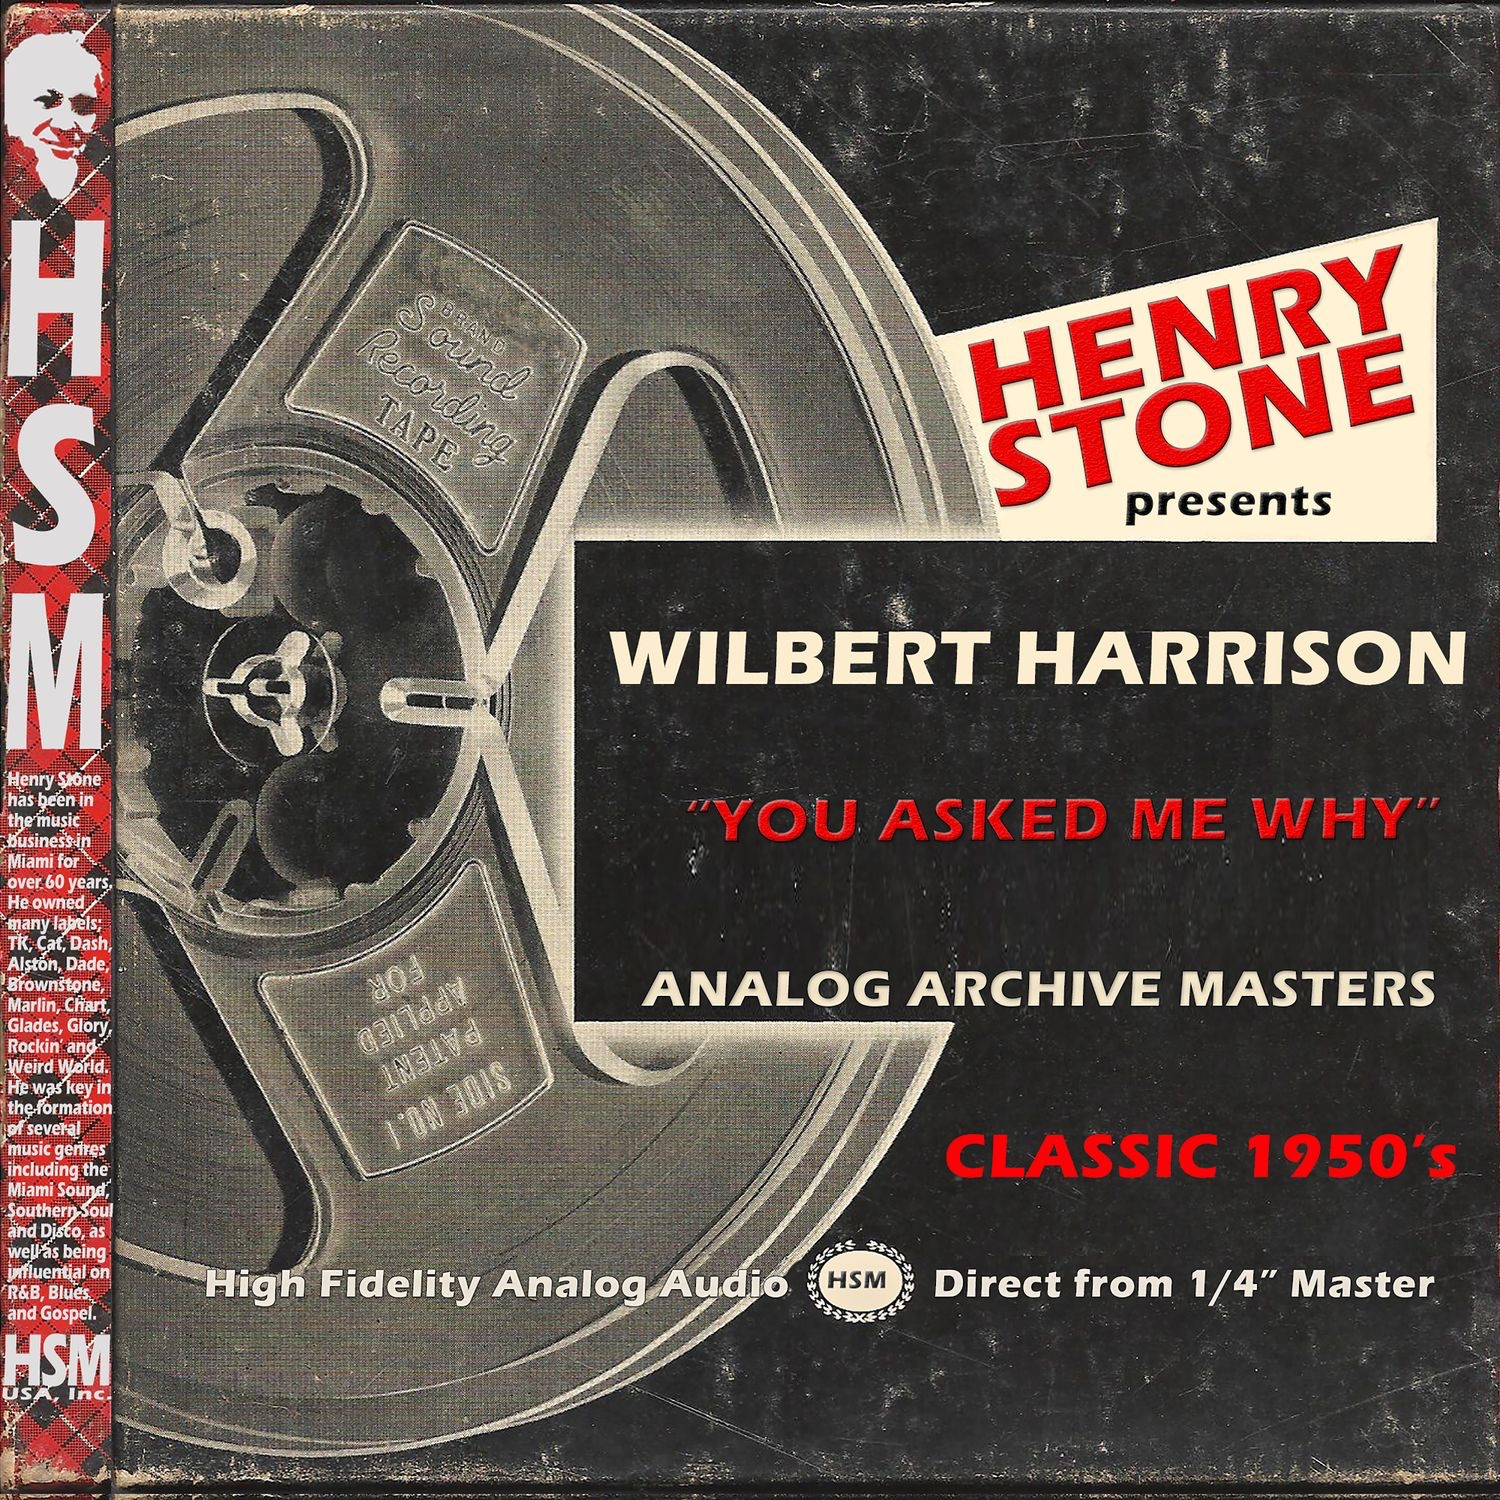 Henry Stone Presents Analog Archive Wilbert Harrison 1950's - Single